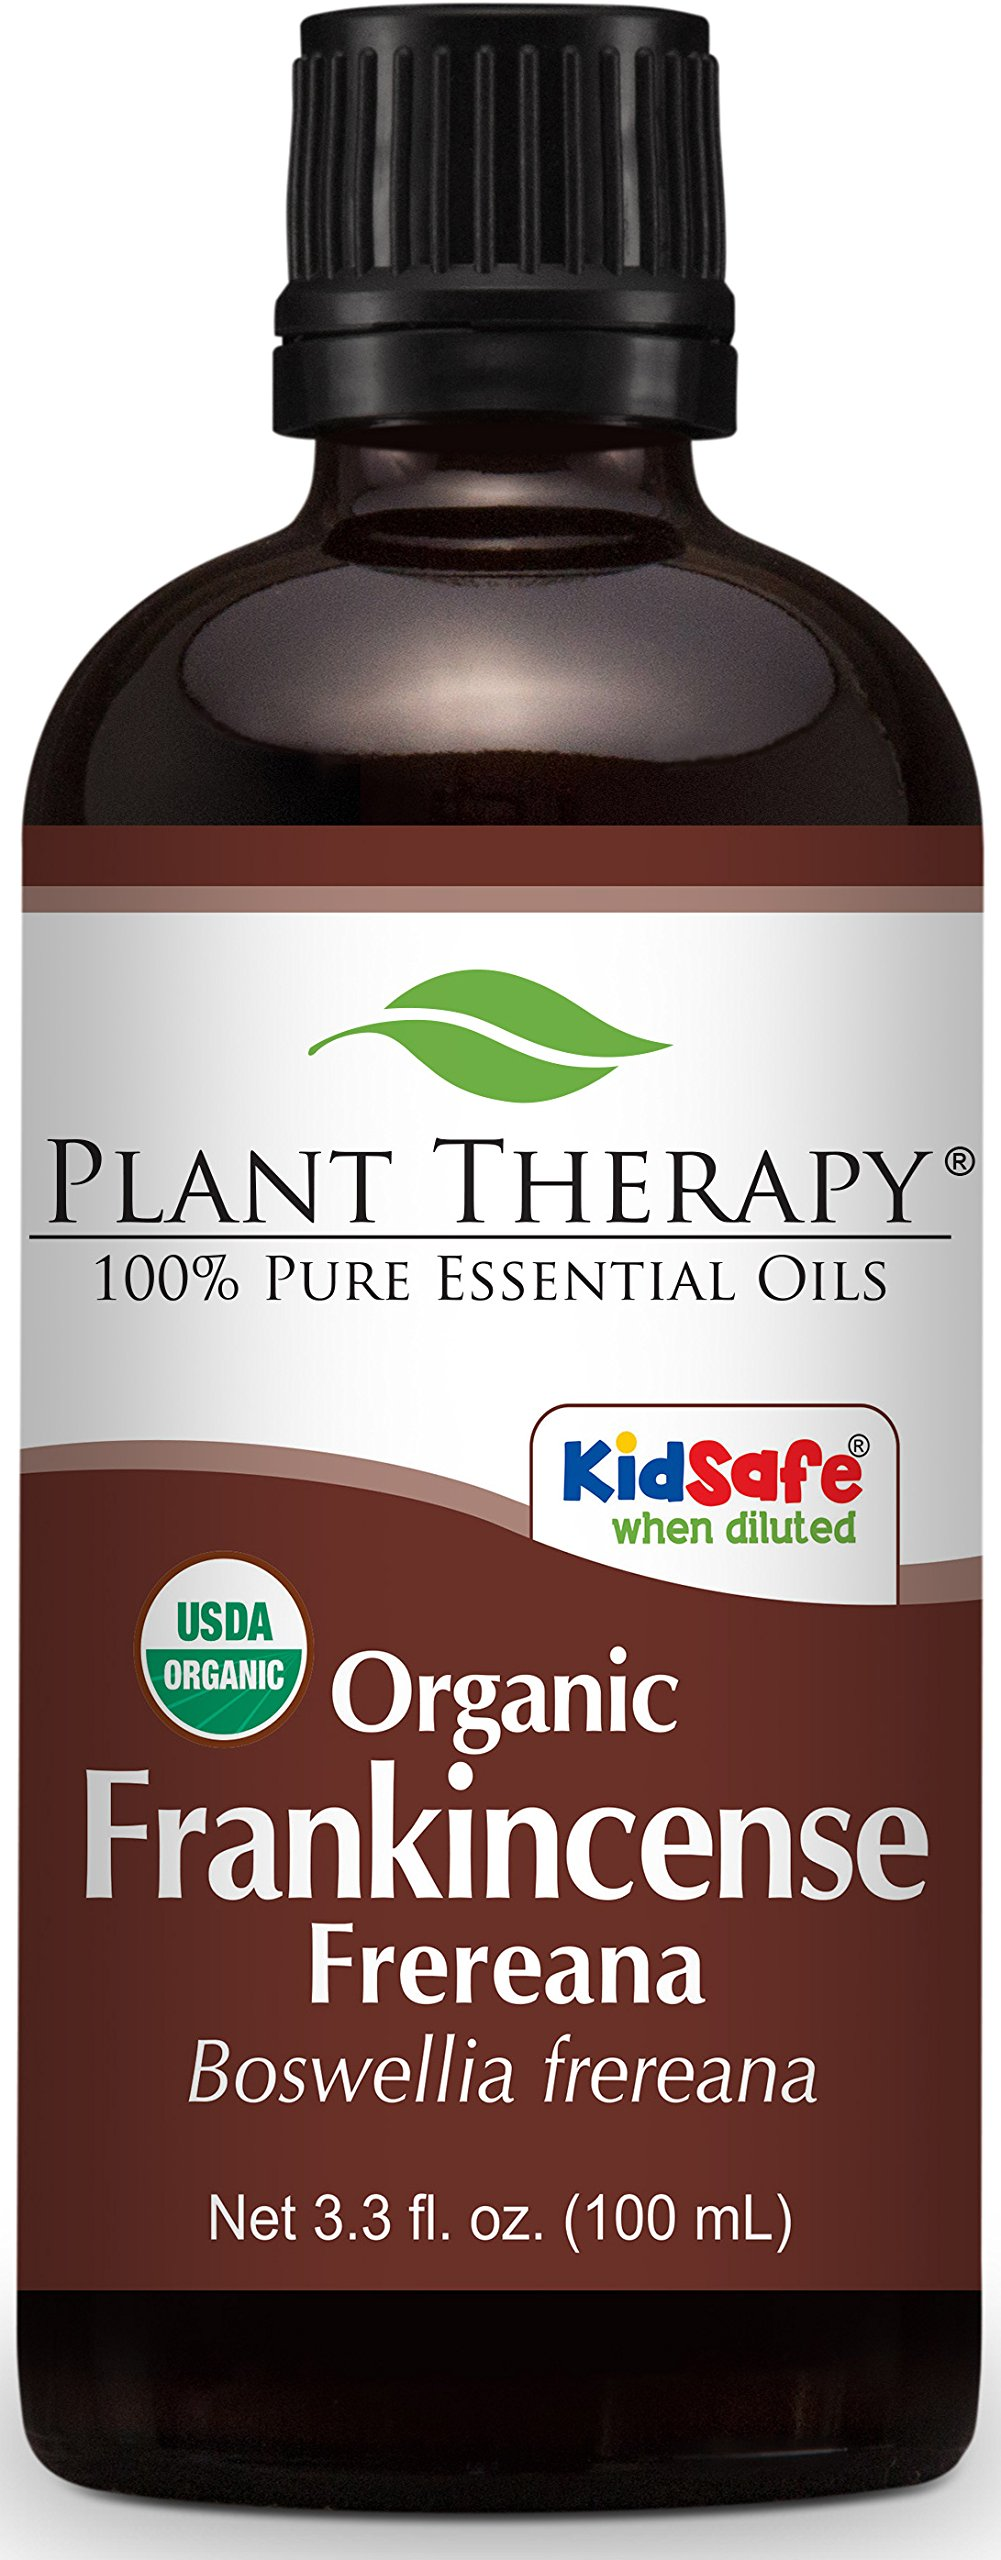 Plant Therapy USDA Certified Organic Frankincense Frereana Essential Oil. 100% Pure, Undiluted, Therapeutic Grade. 100 ml (3.3 oz).